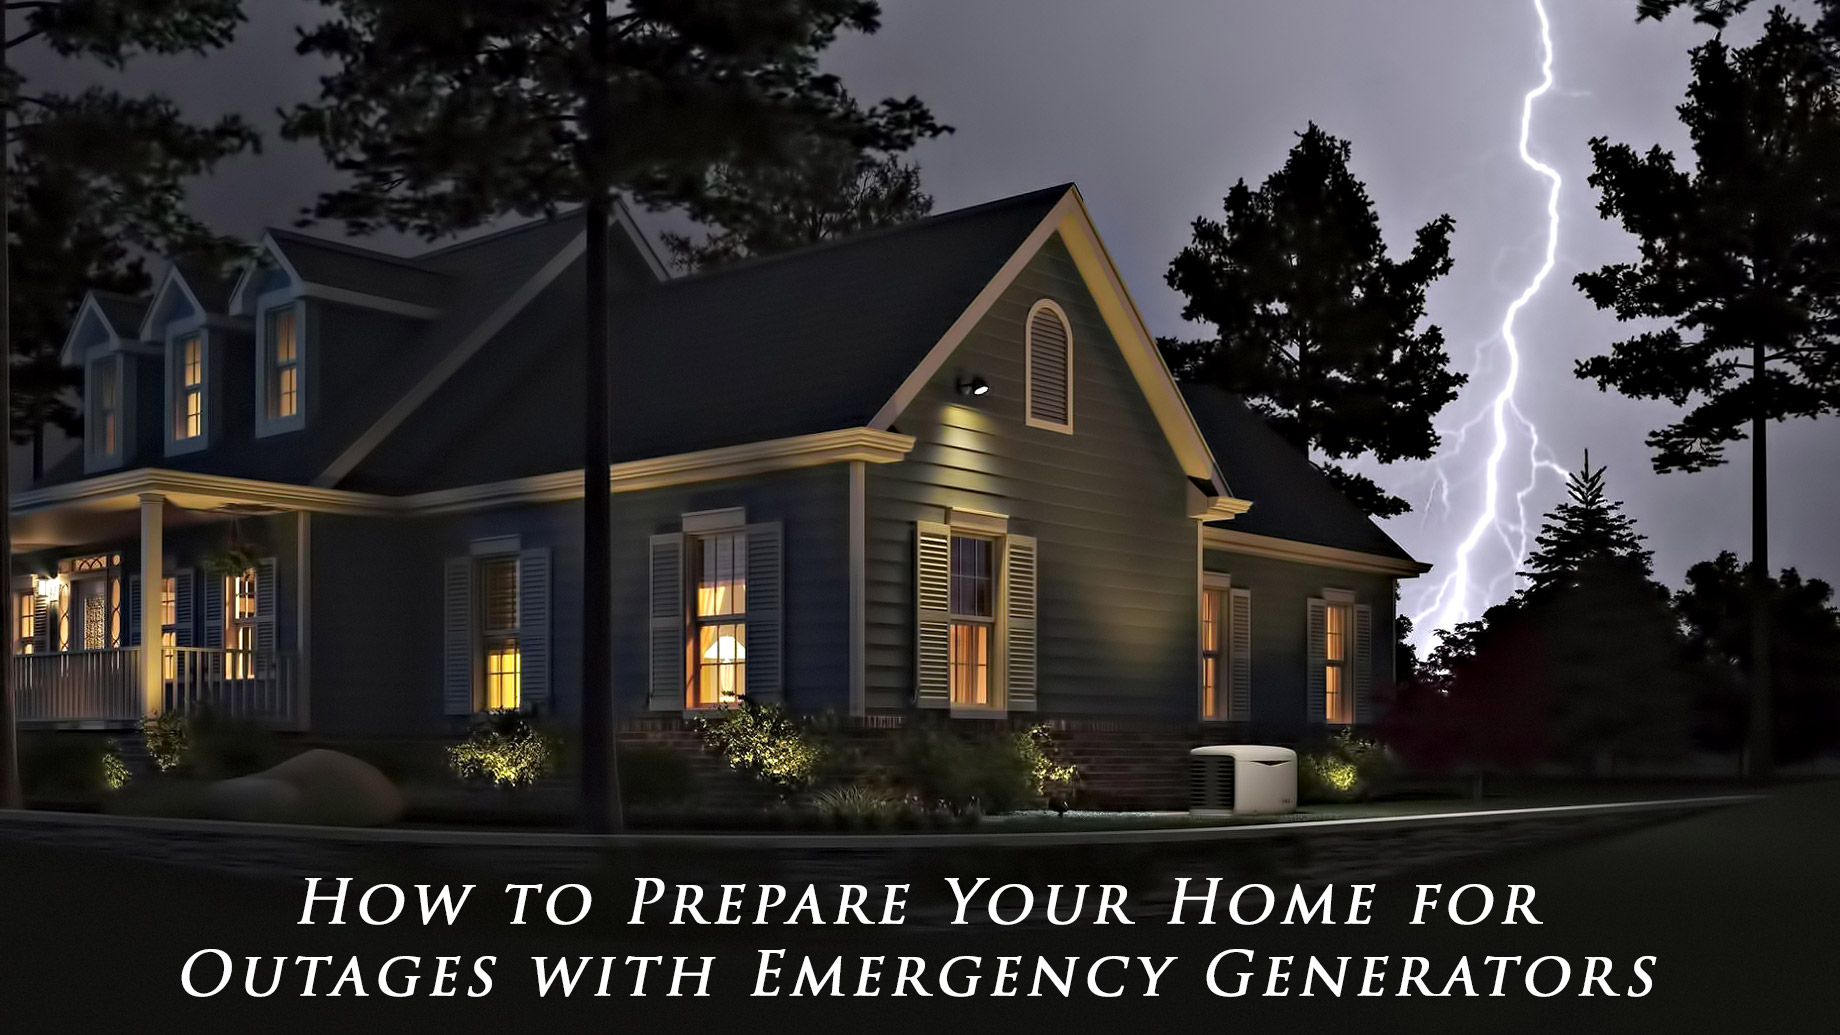 Homeowner Advice - How to Prepare Your Home for Outages with Emergency Generators